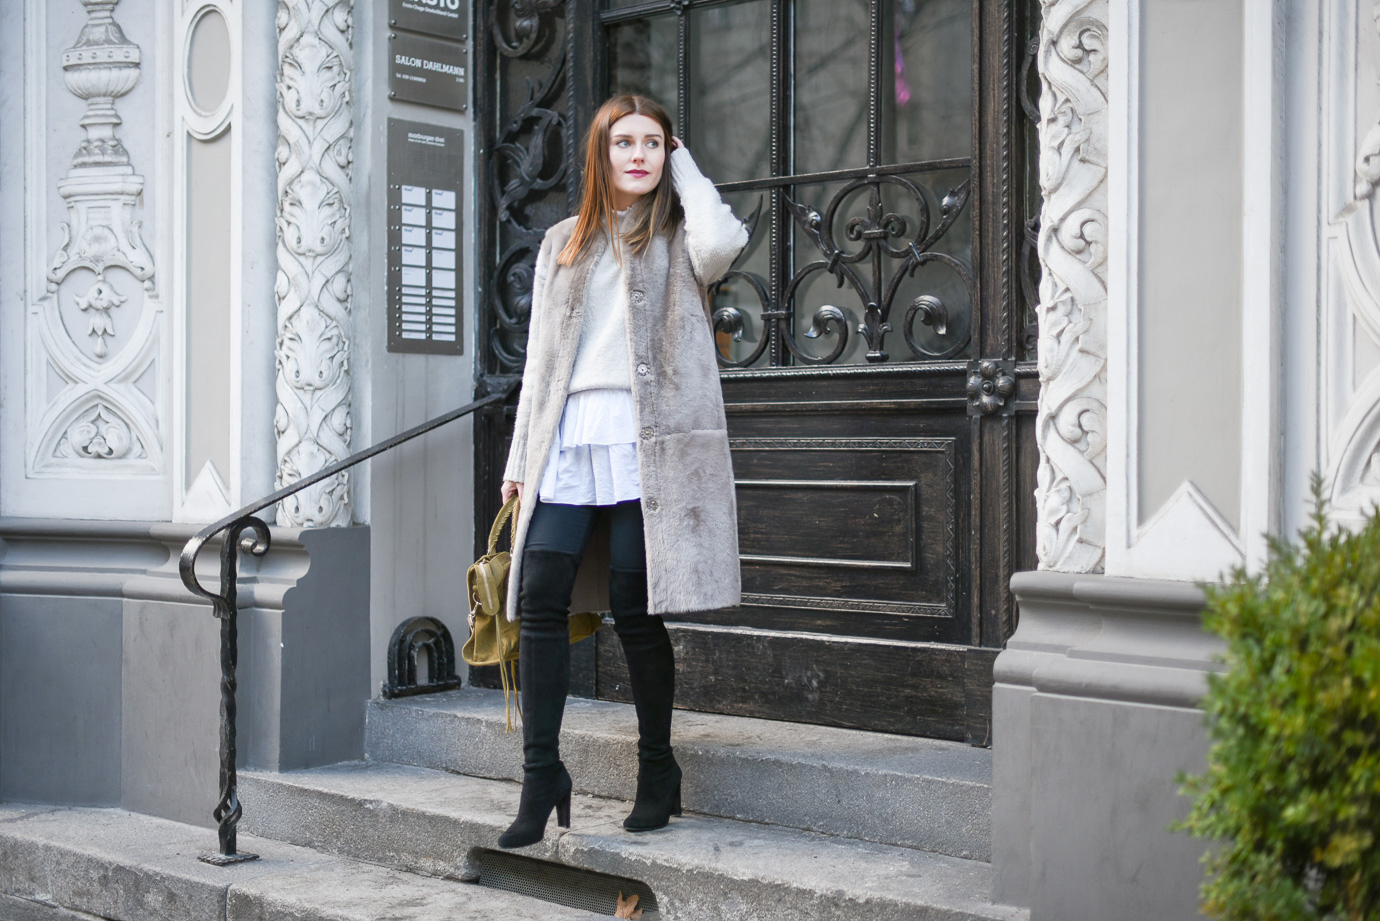 berlin fashion week outfit hoard of trends personal style fashion blog modeblog aus berlin. Black Bedroom Furniture Sets. Home Design Ideas